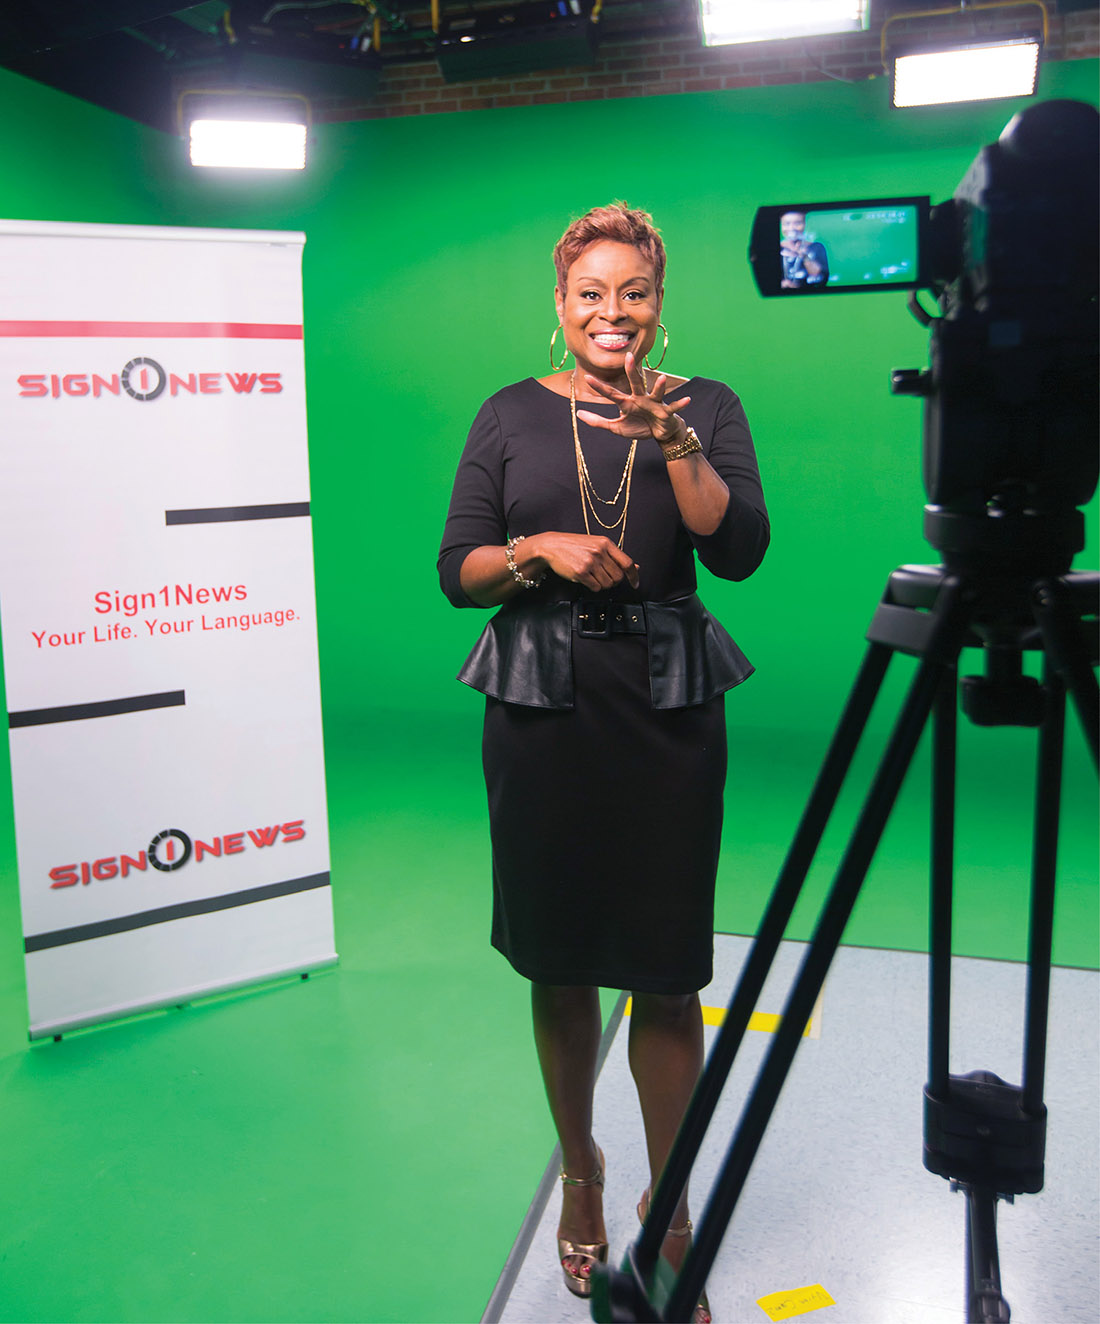 Karen Graham, BA'87, left her longtime job as anchor for an Atlanta television station to found Sign1News, the first and only network to cater to the deaf community in American Sign Language. (KAY HINTON)